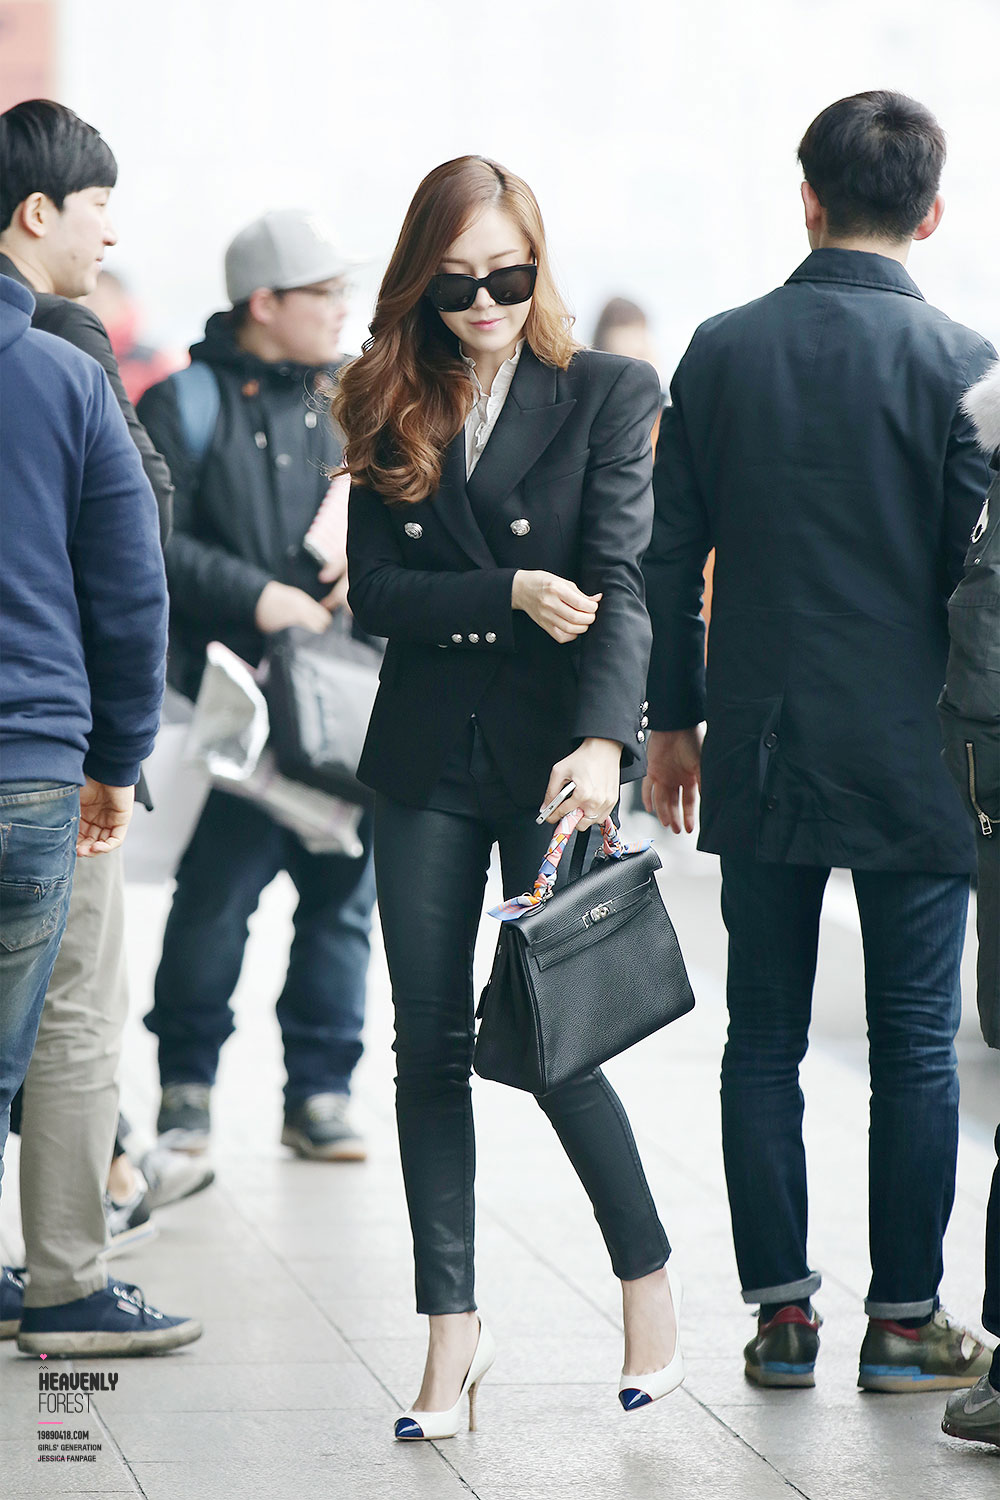 Jessica Mrmr Airport Fashion Snsd Pics